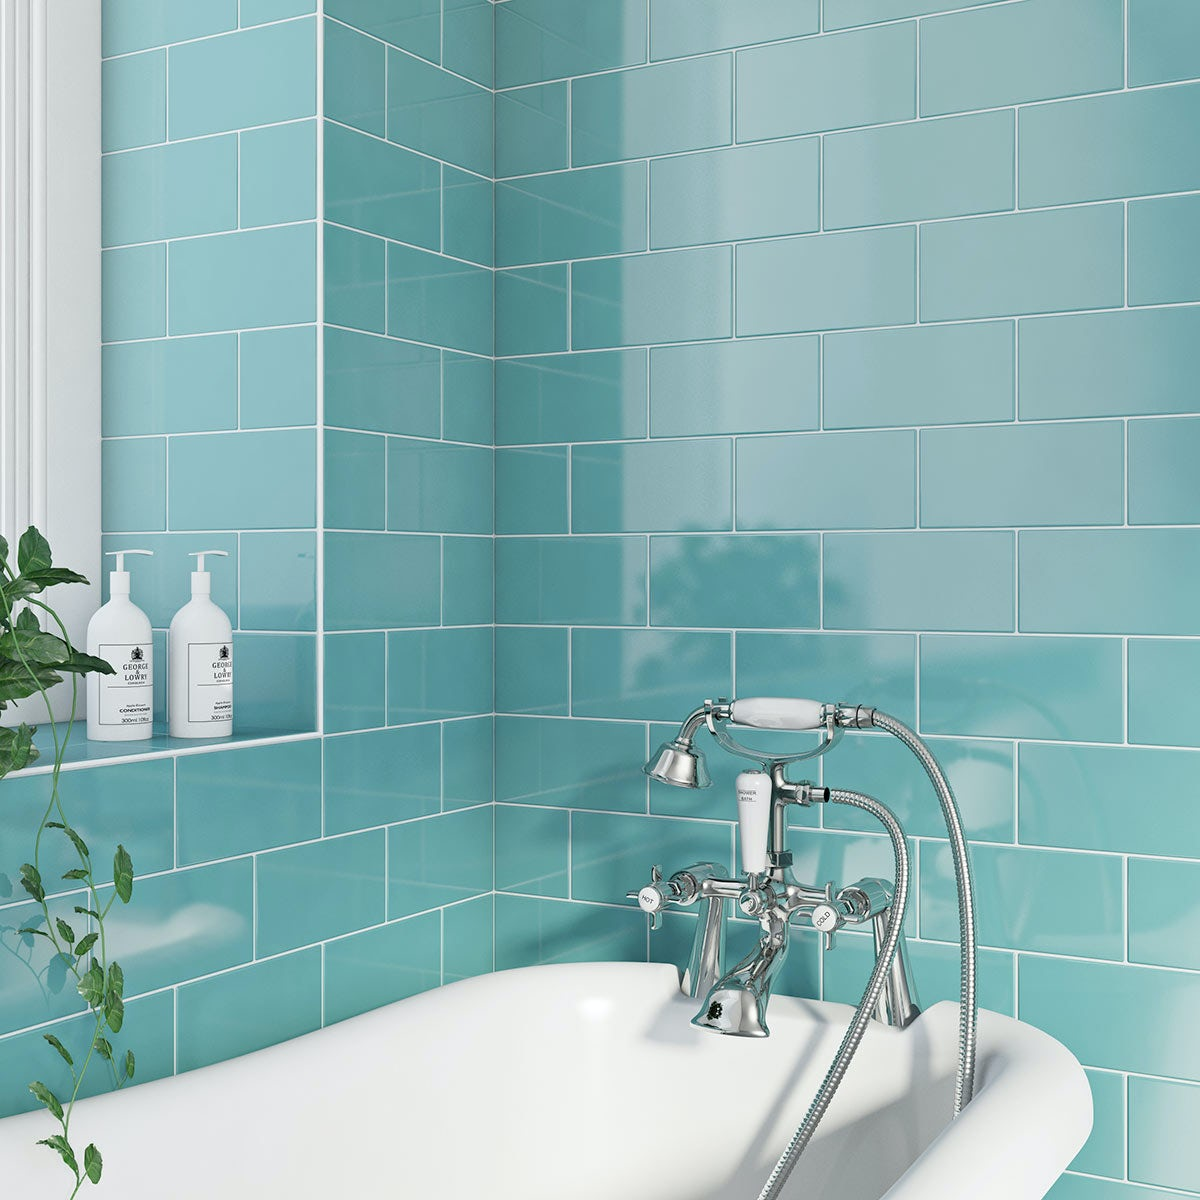 British Ceramic Tile Metro flat powder blue gloss tile 100mm x 200mm